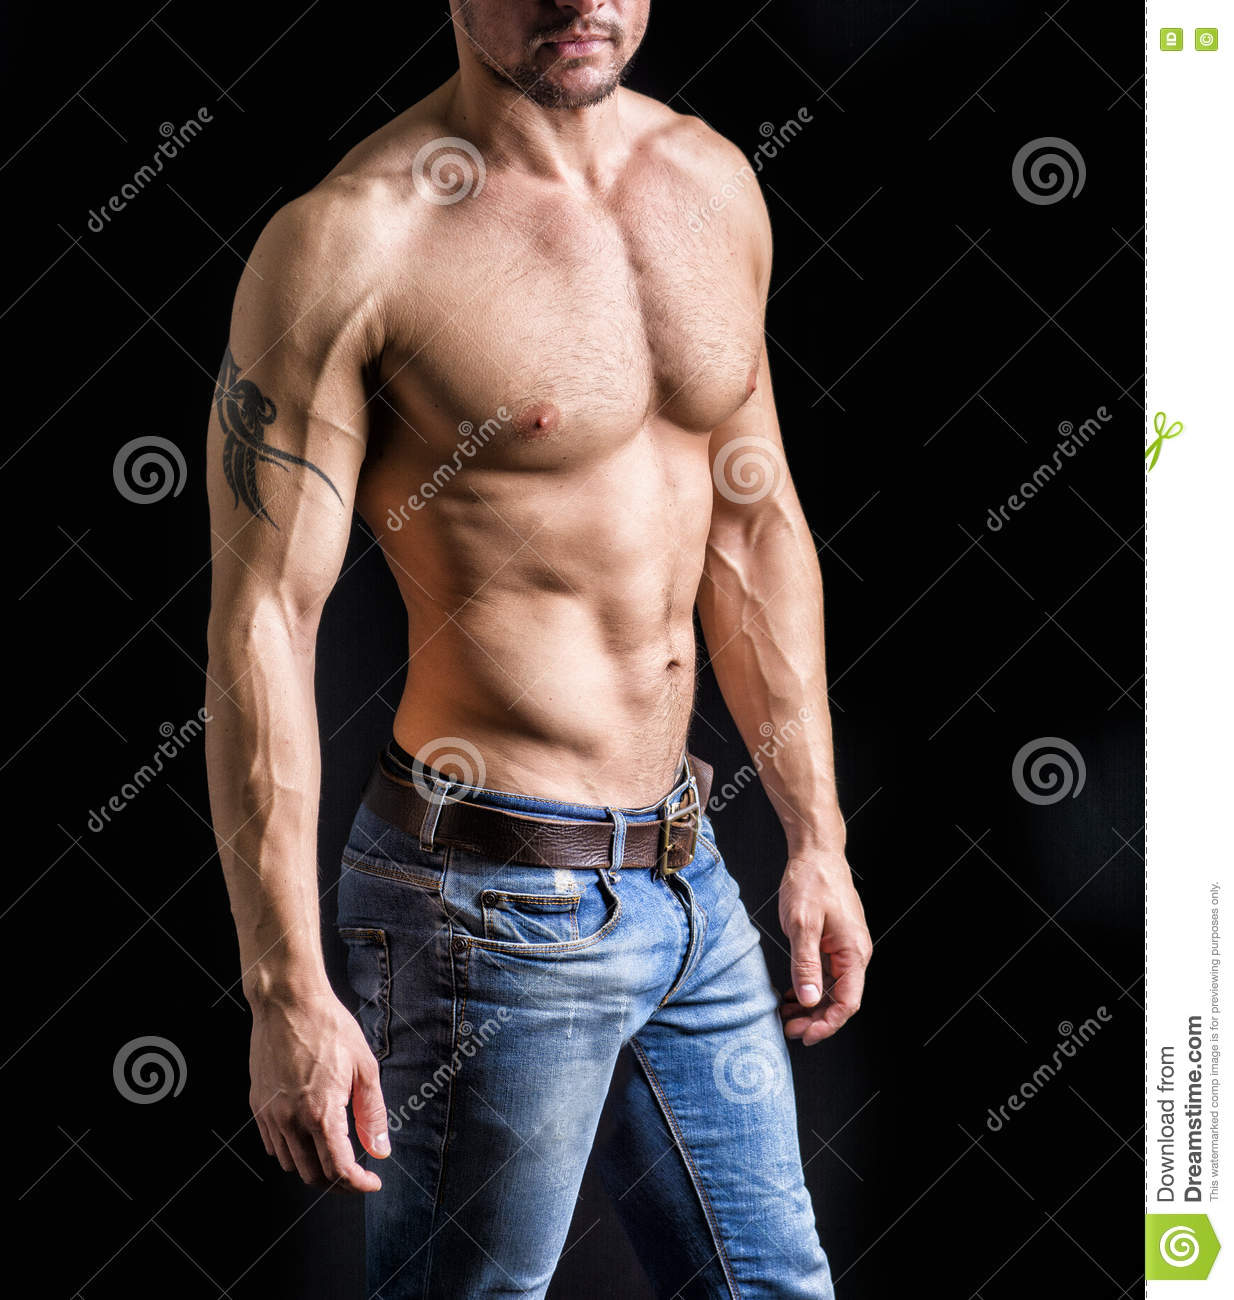 Muscle Naked Young Man Posing In Jeans Stock Photo - Image